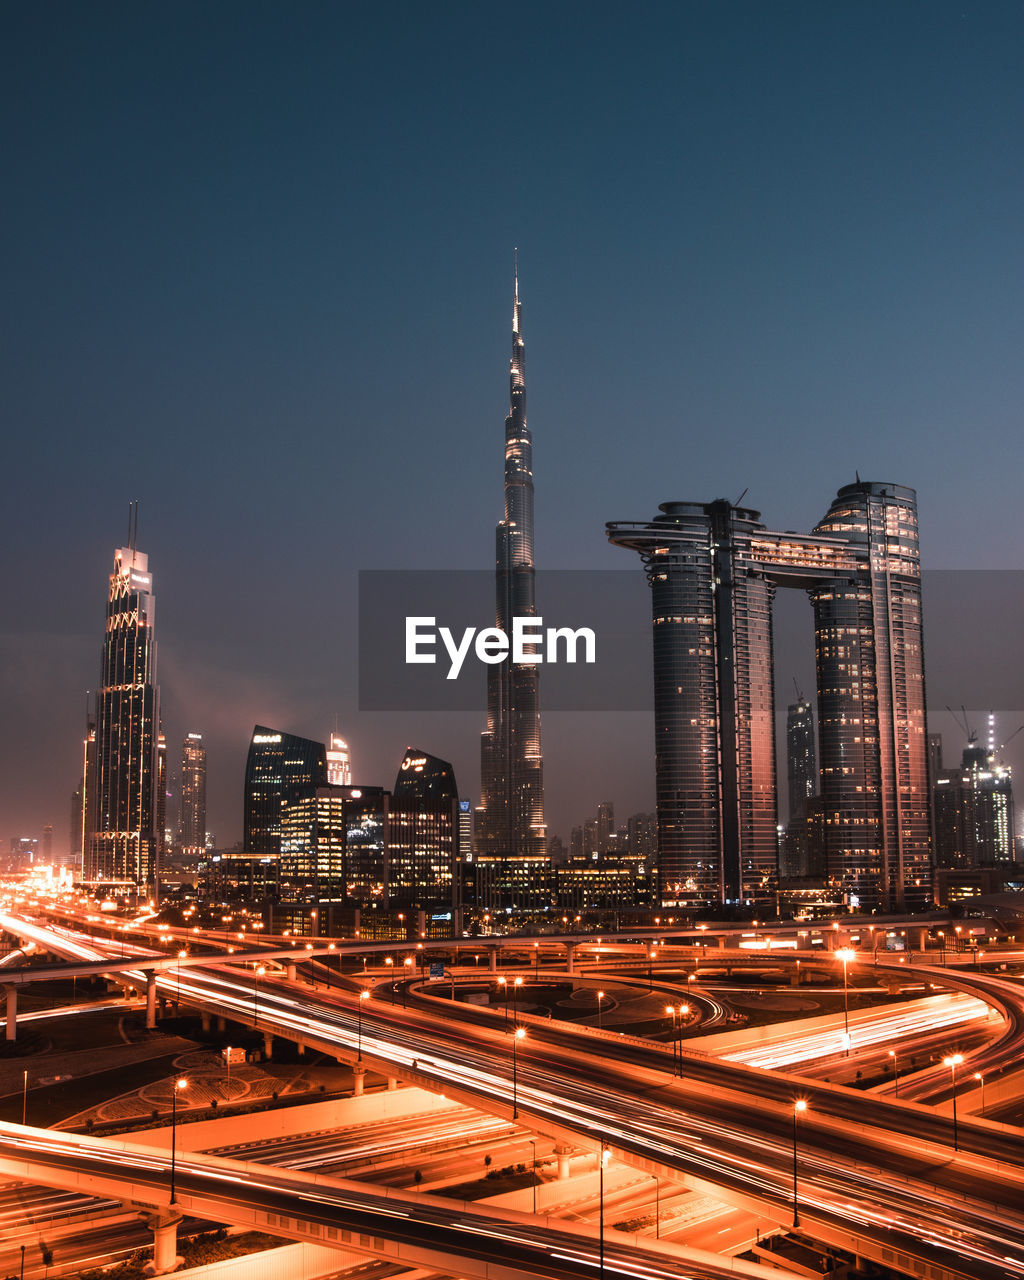 Dubai at sunset with light trails on the highway